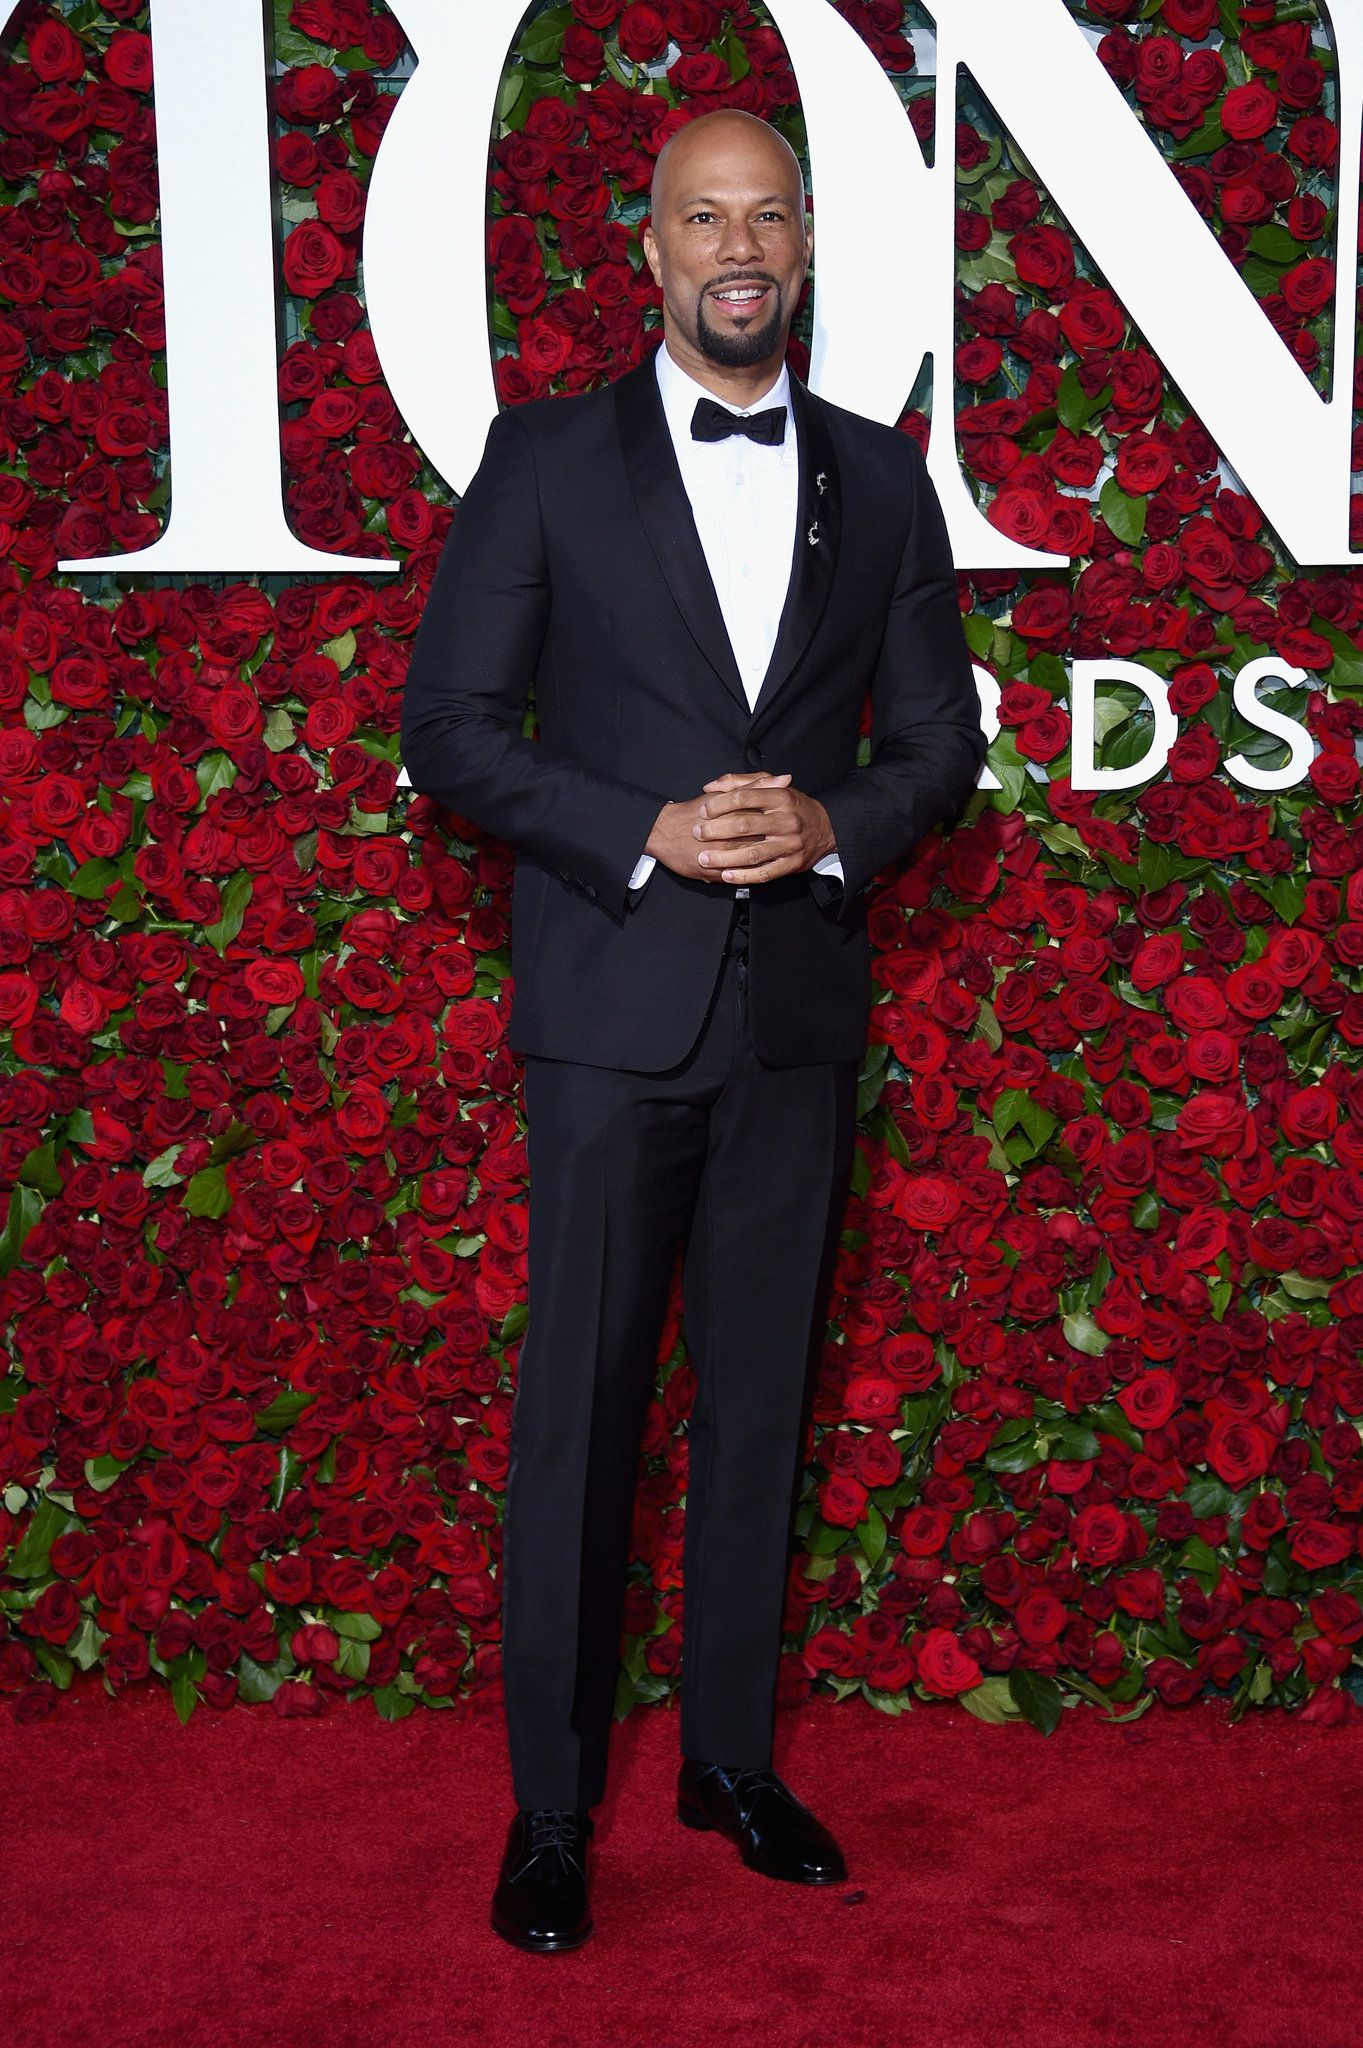 Broadway's biggest stars arrived for the 2016 Tony Awards on Sunday night at the Beacon Theater. Here are the arrivals.